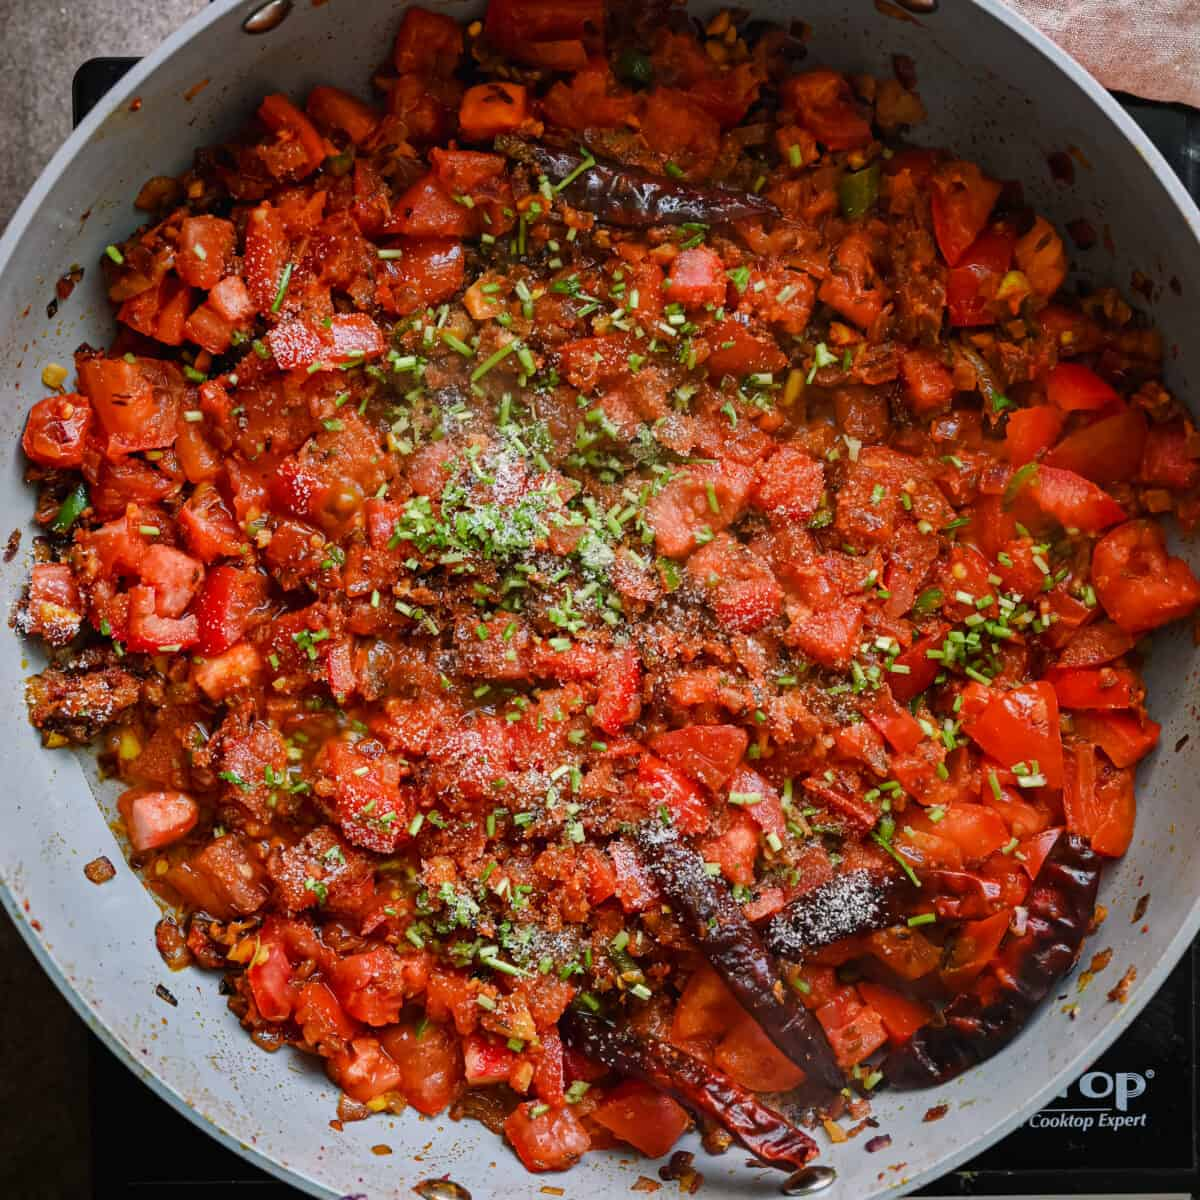 cooked tomatoes with cilantro on top of masala in a saute pan